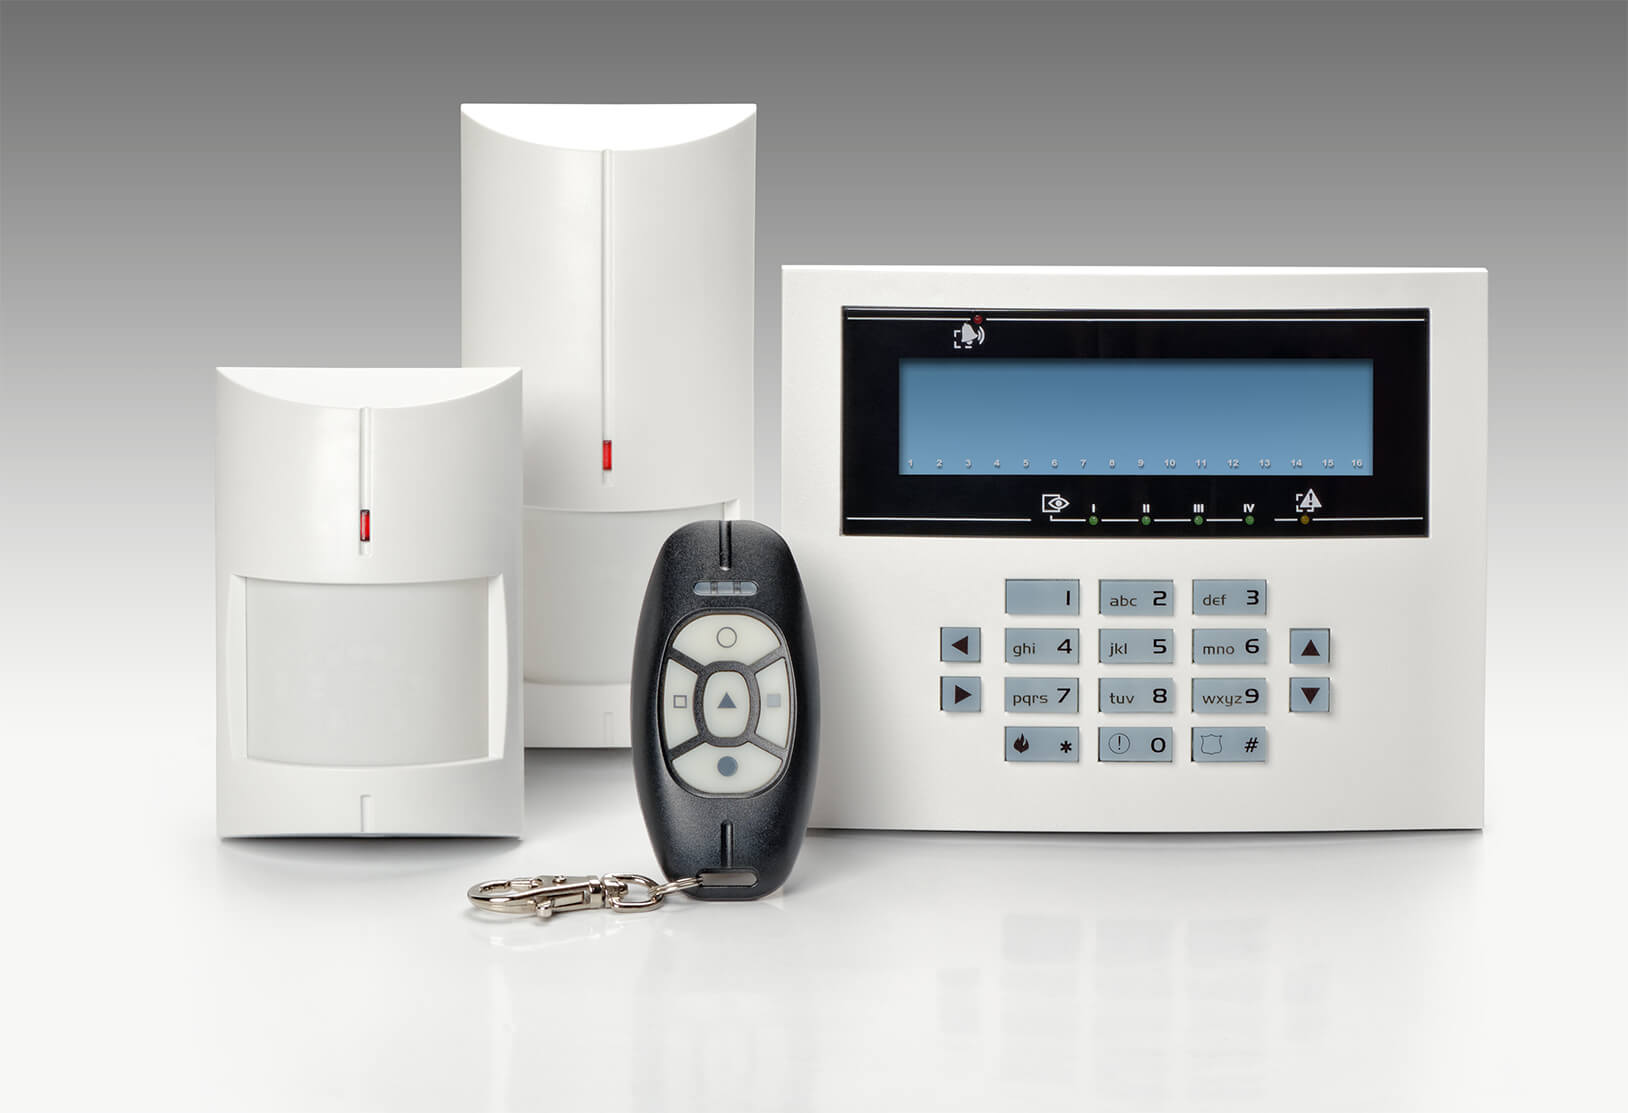 Business & Residential NSI / NACOSS Approved Burglar Alarms In Barking E6 - Local Barking E6 security company.Call 02078872244 - Dedicated to Safety & Security. Companies, shops and homes ..